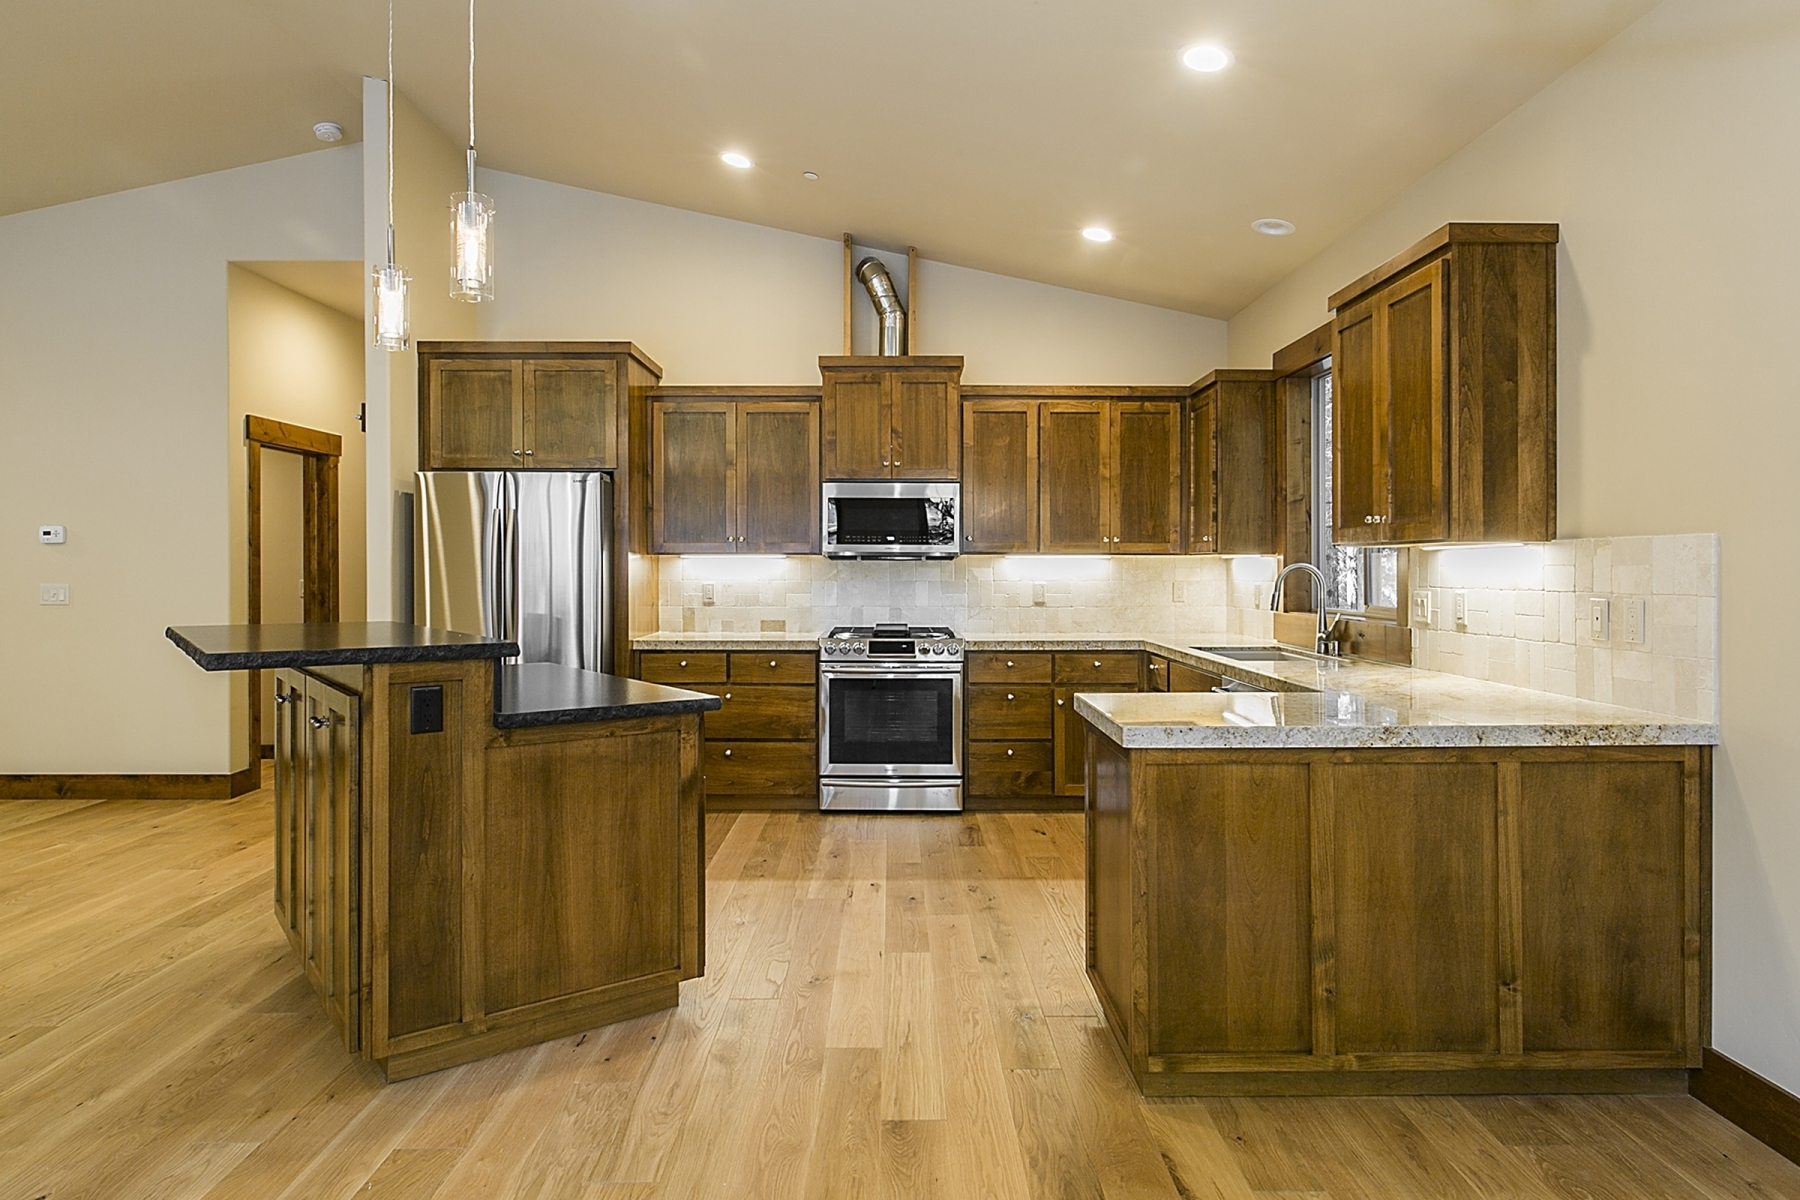 Additional photo for property listing at 11511 Sitzmark Way, Truckee, CA 11511 Sitzmark Way Truckee, California 96161 United States